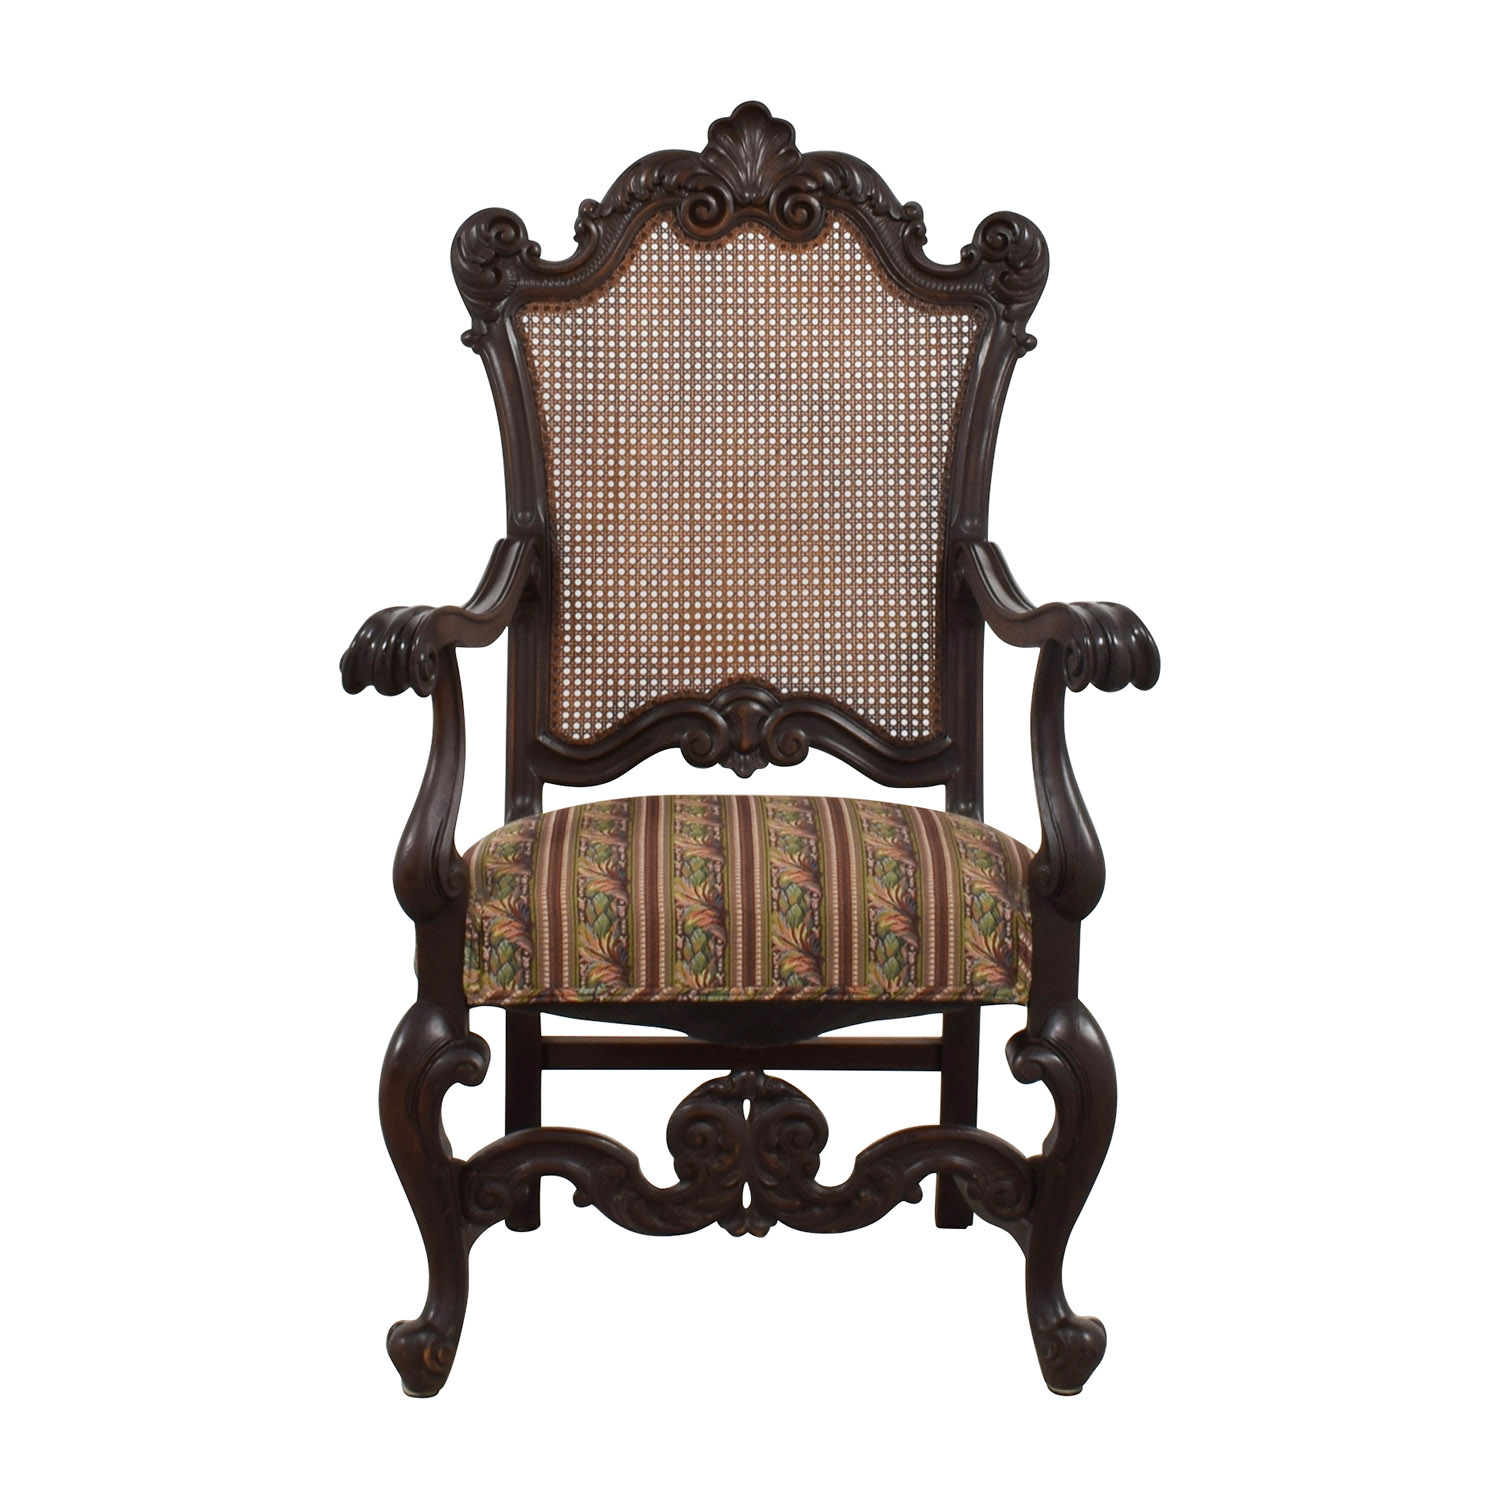 Antique Accent Chairs 89 Off Antique Accent Chair With Hole Caning Back Chairs